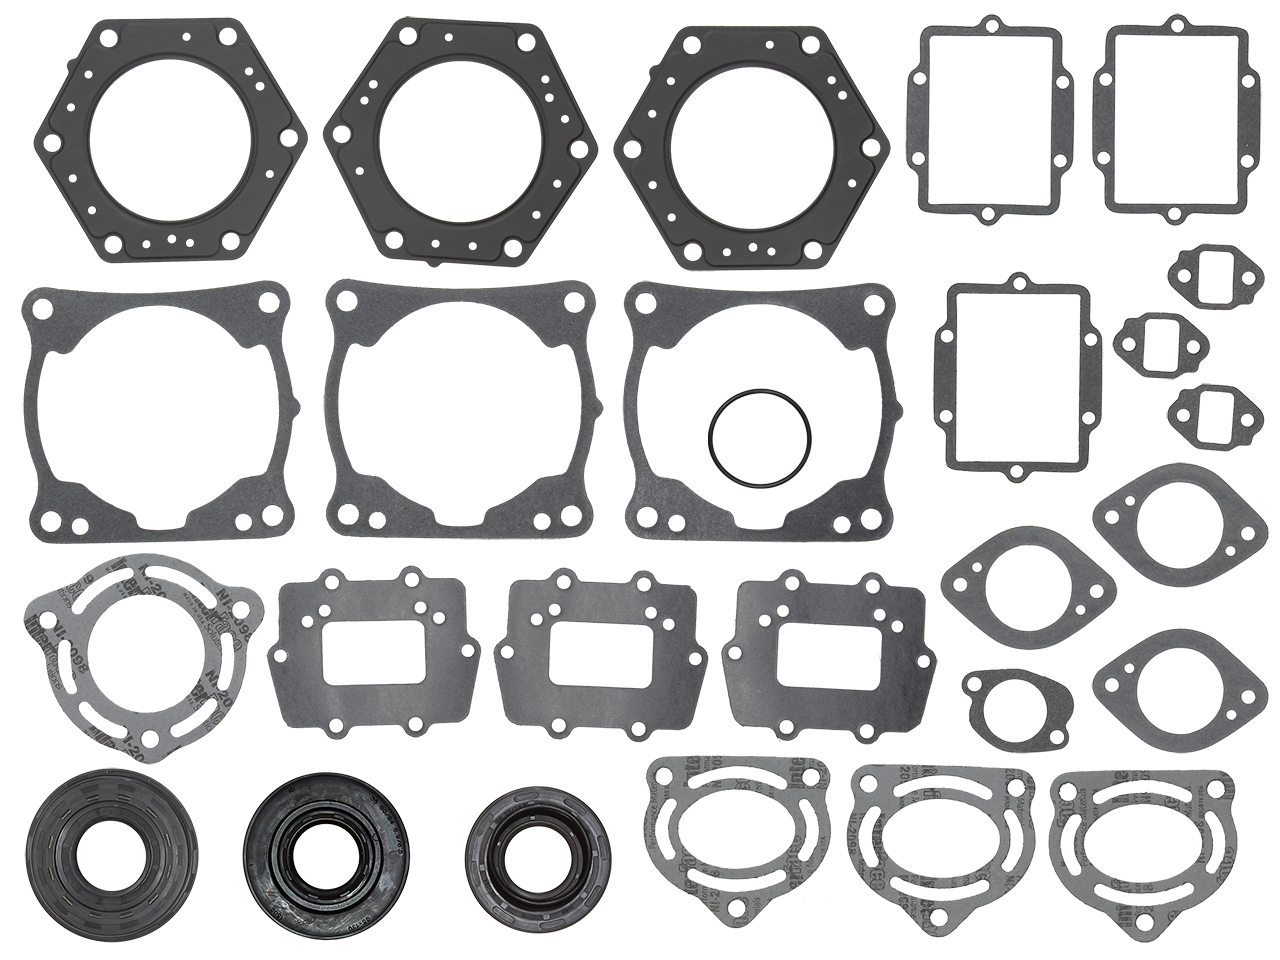 NAMURA COMPLETE GASKET KIT NW-20006F